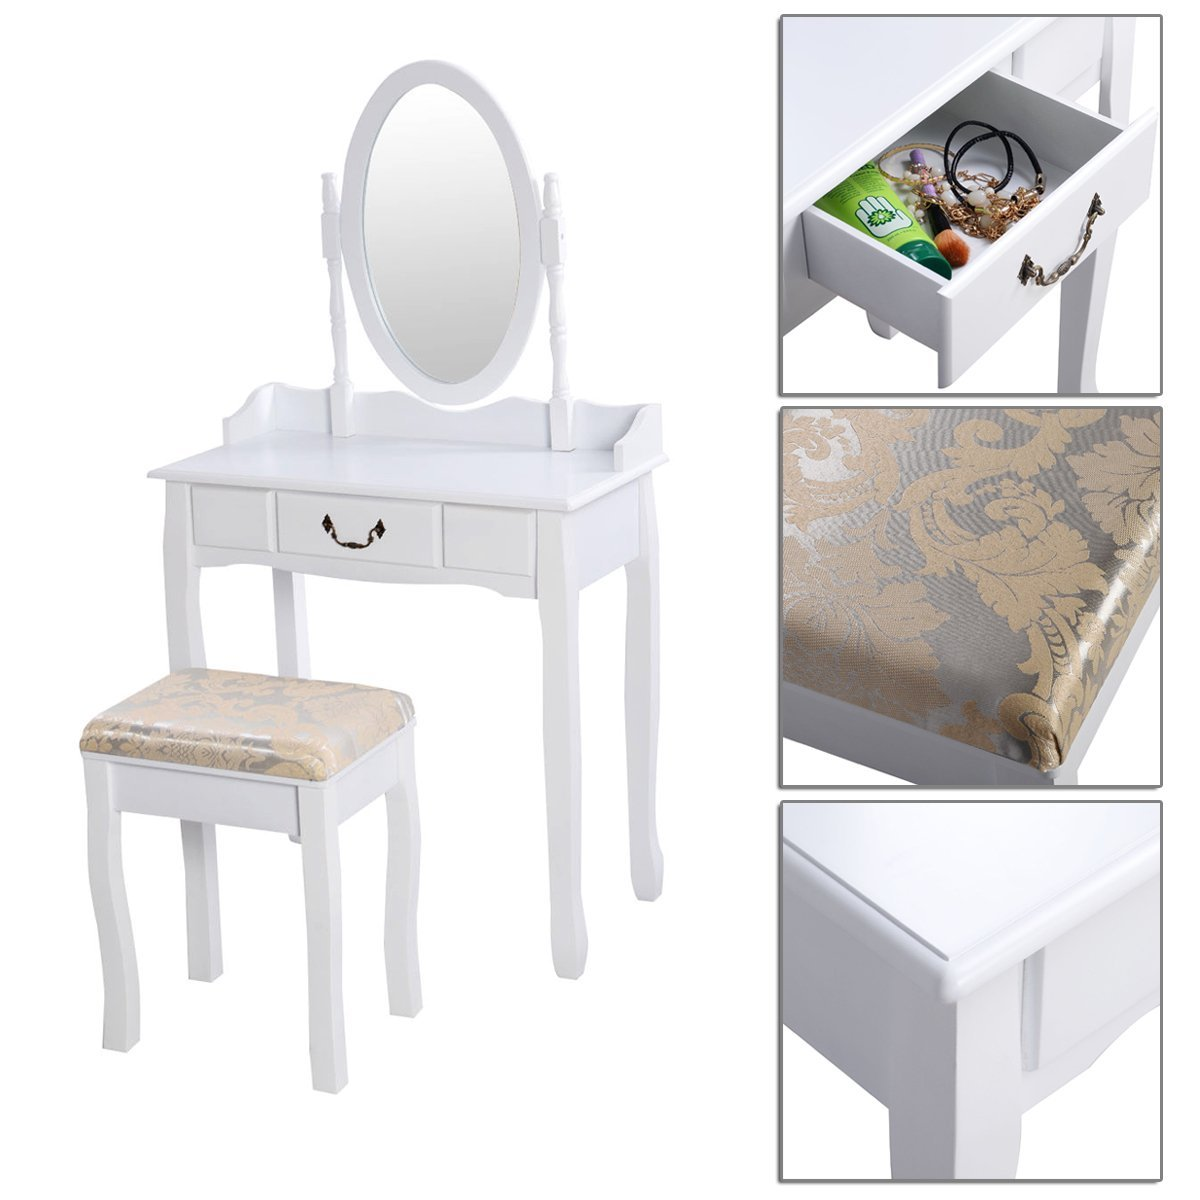 Cheap Dresser Vanity Set Find Dresser Vanity Set Deals On Line At